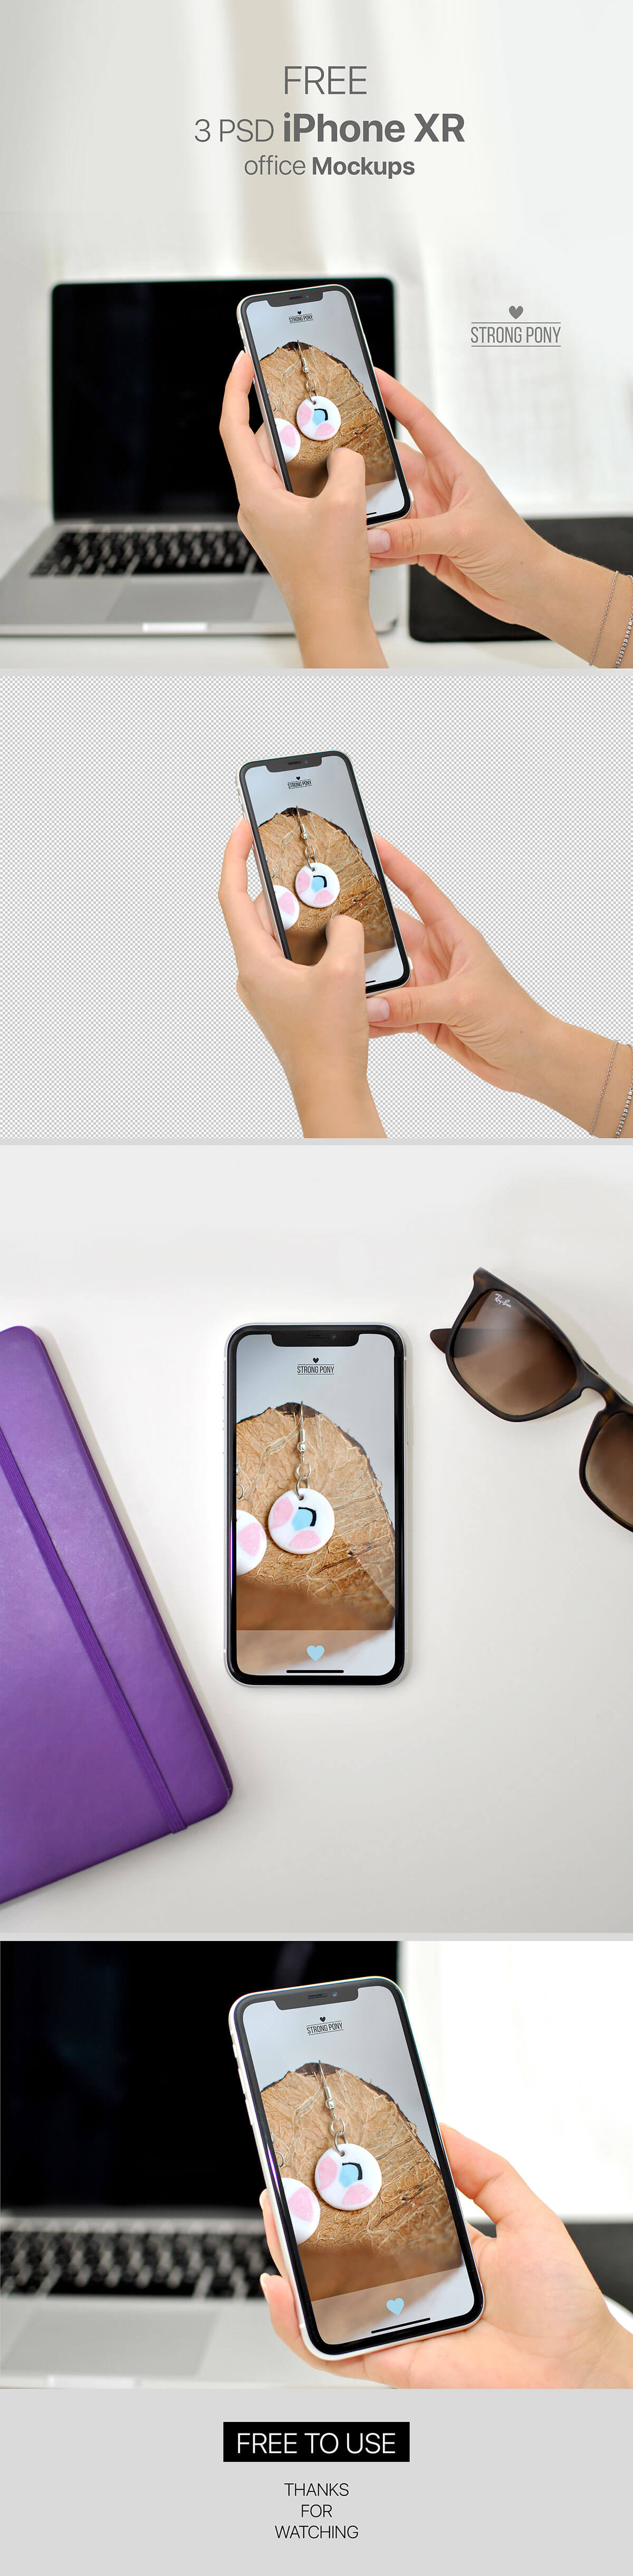 Free iPhone XR Office Mockup Pack